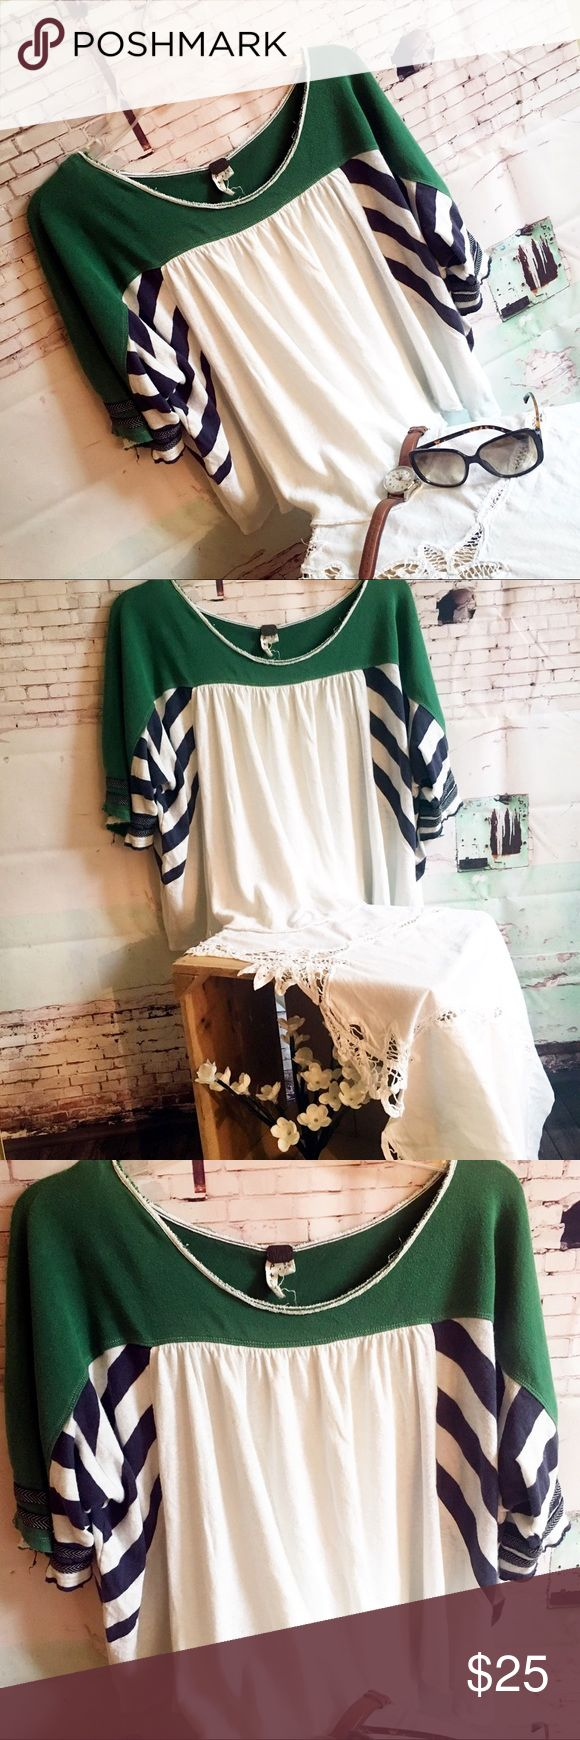 WE THE FREE Flowy White Top, Size Small WE THE FREE Flowy Smock Tee, Size Small Green navy and white 100% cotton tee.  Generous cut so will definitely fit a medium. Free People Tops